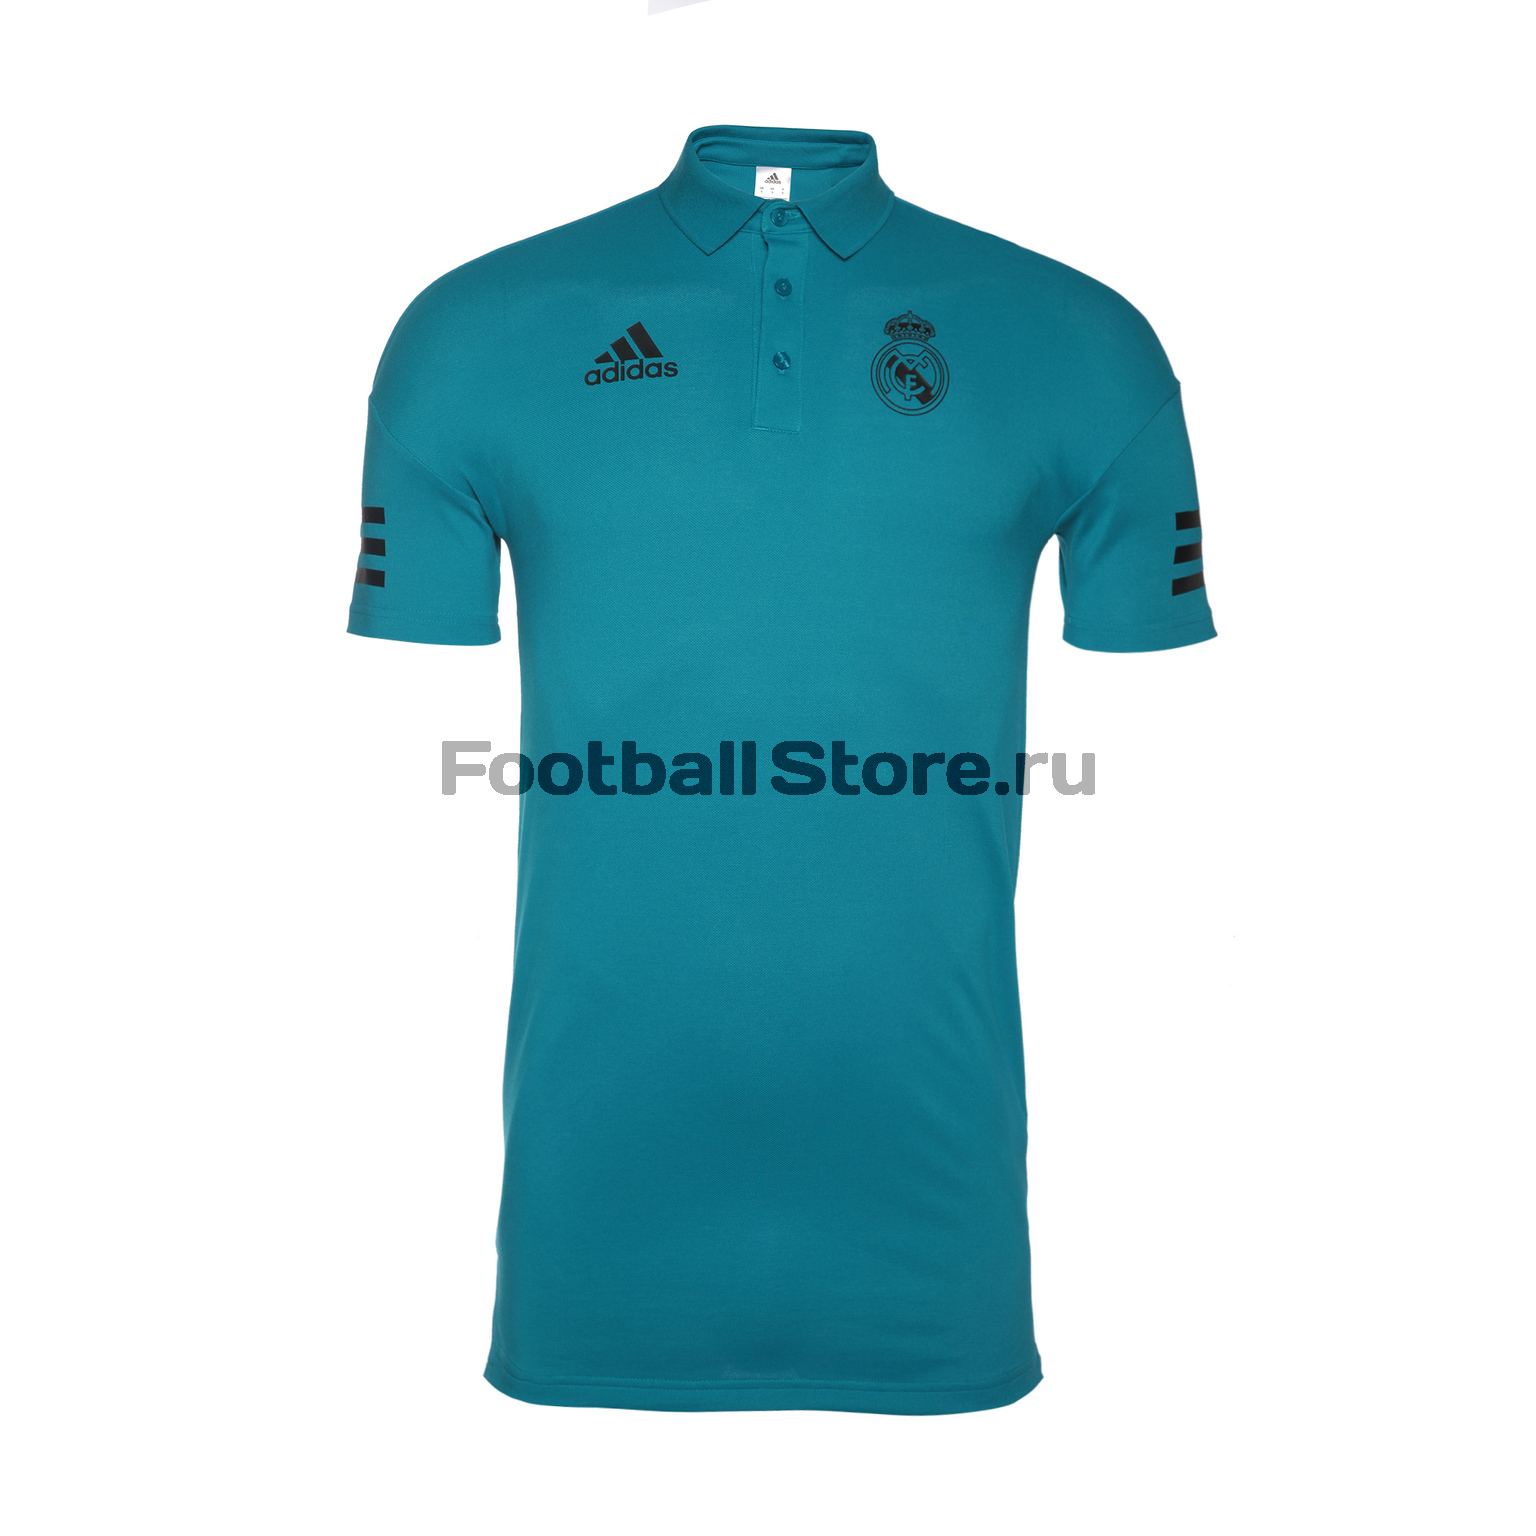 Real Madrid Adidas Поло Adidas Real Madrid EU Polo BQ7823 real madrid adidas свитер adidas real madrid euhybrid top bq7851